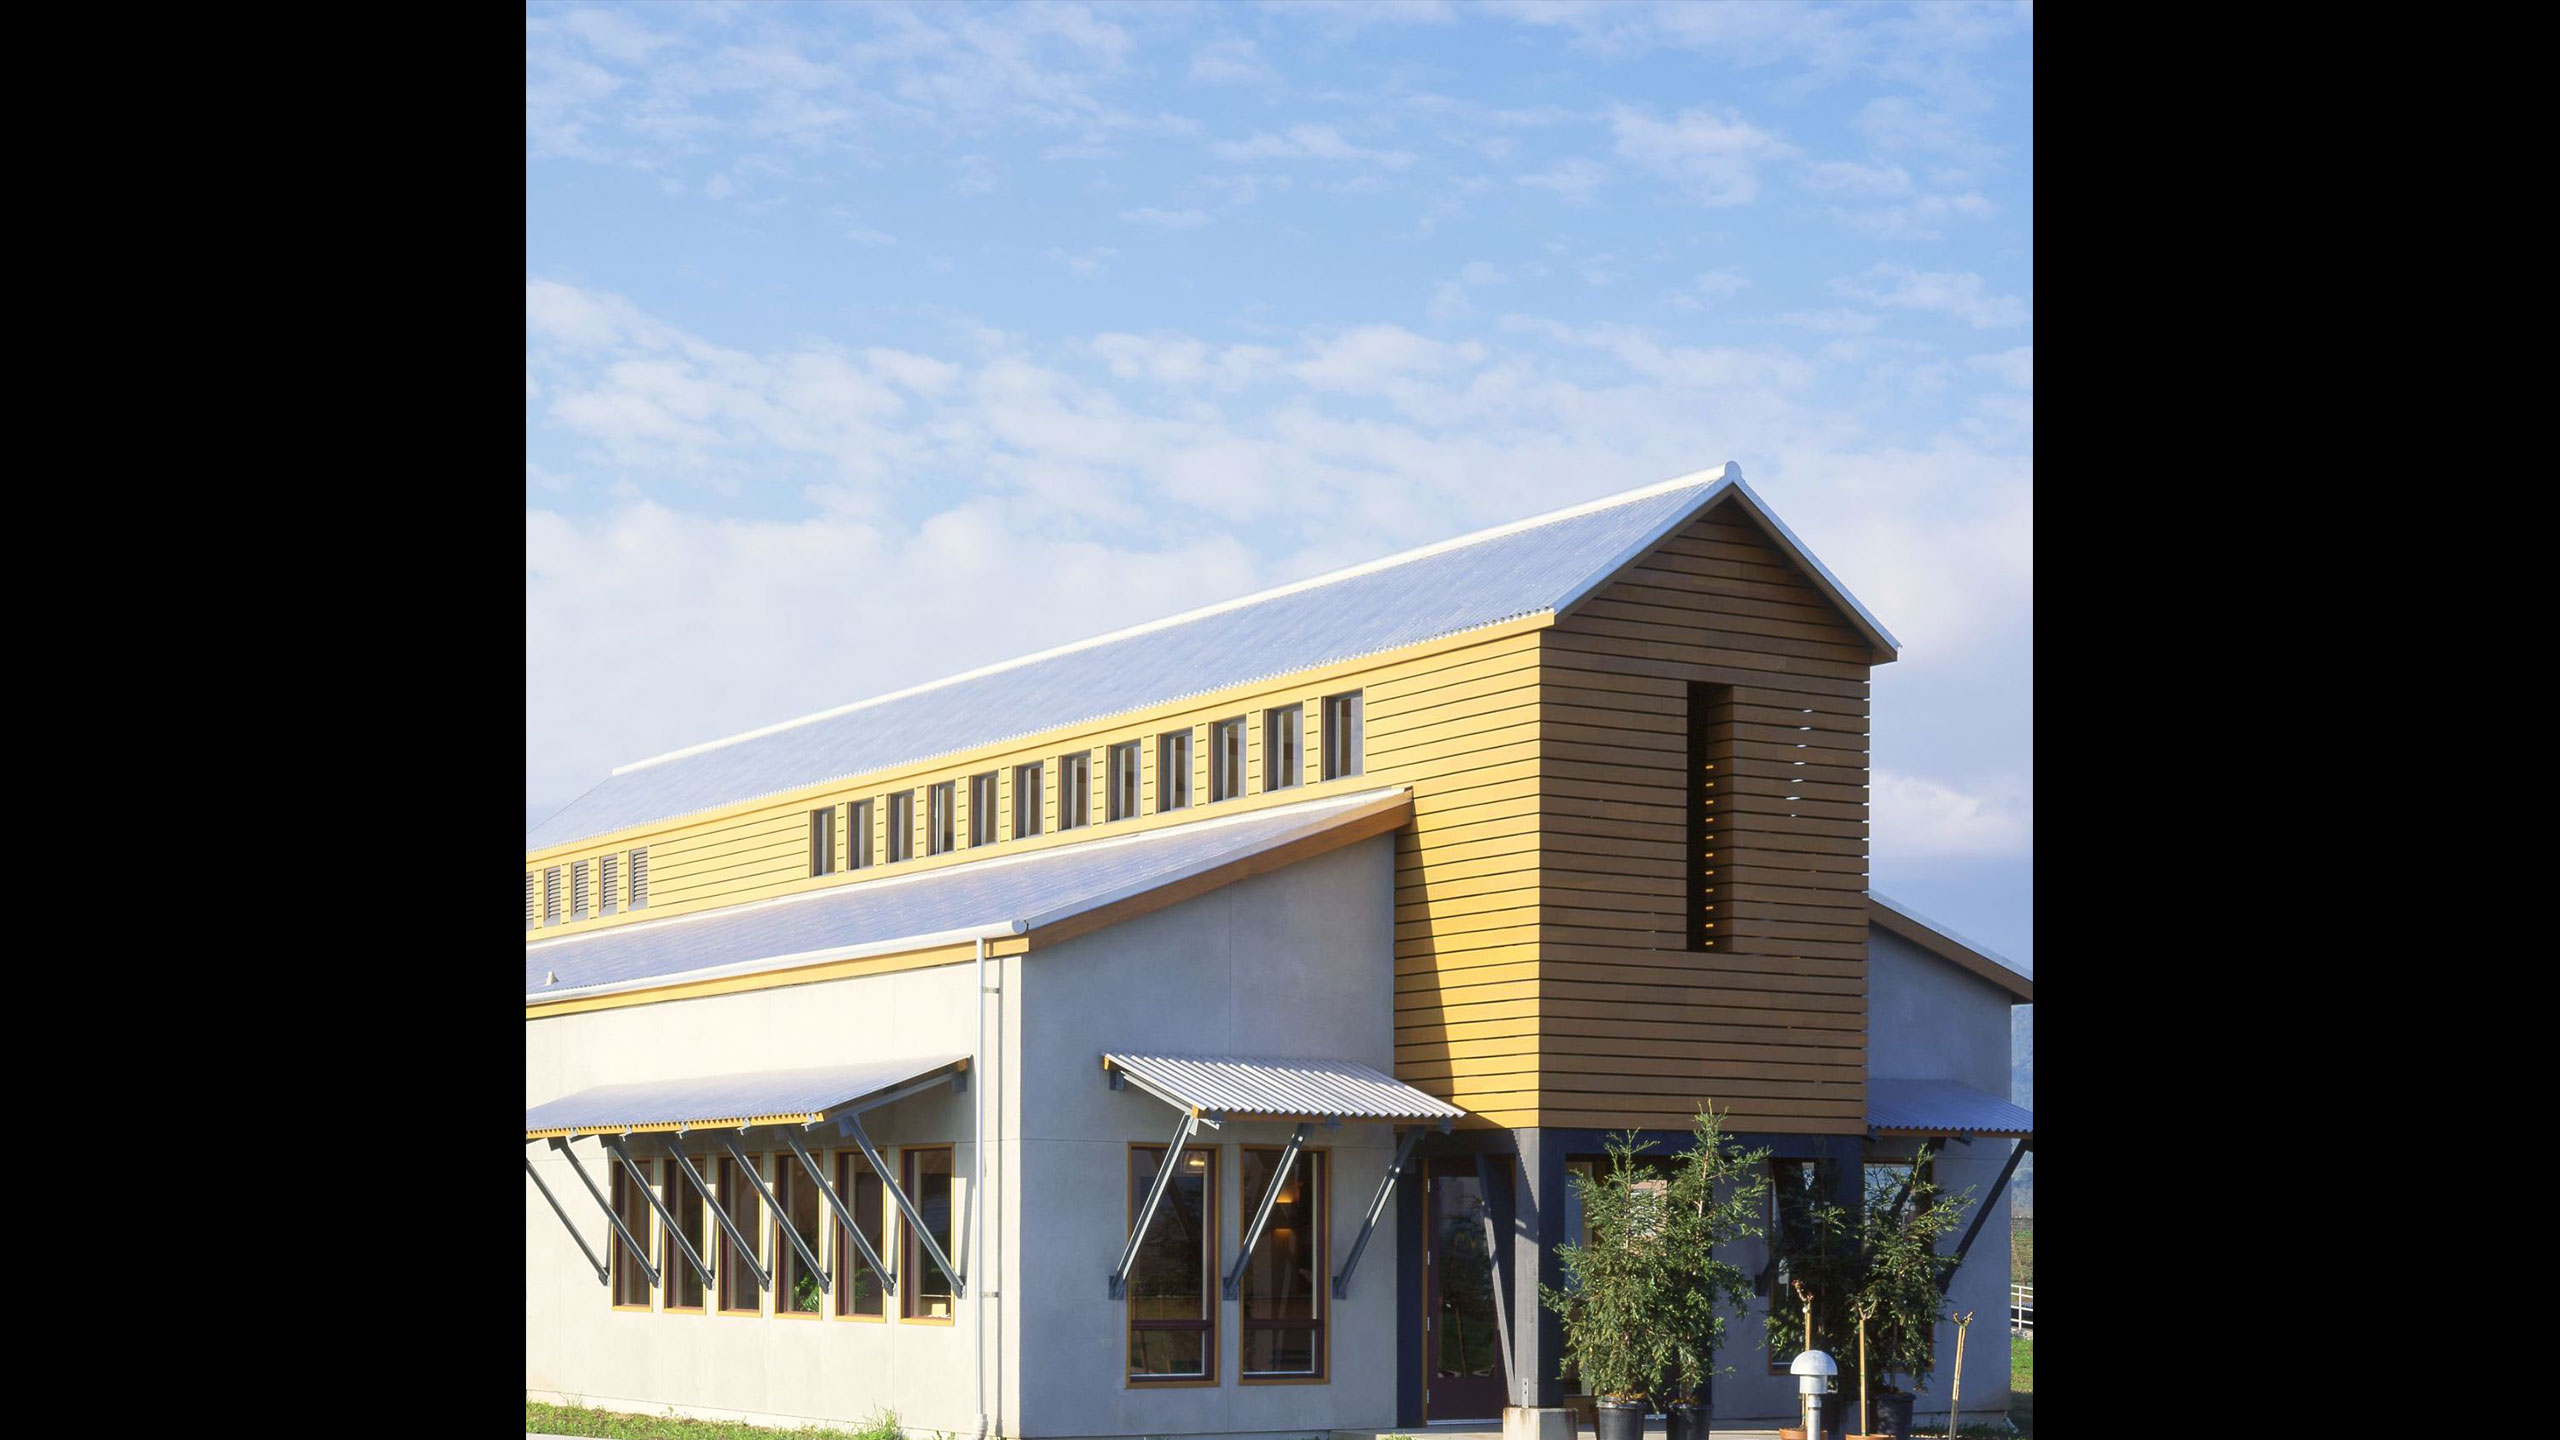 Winery-Architecture-Geyserville-Clos-du-Bois-barn-style-building